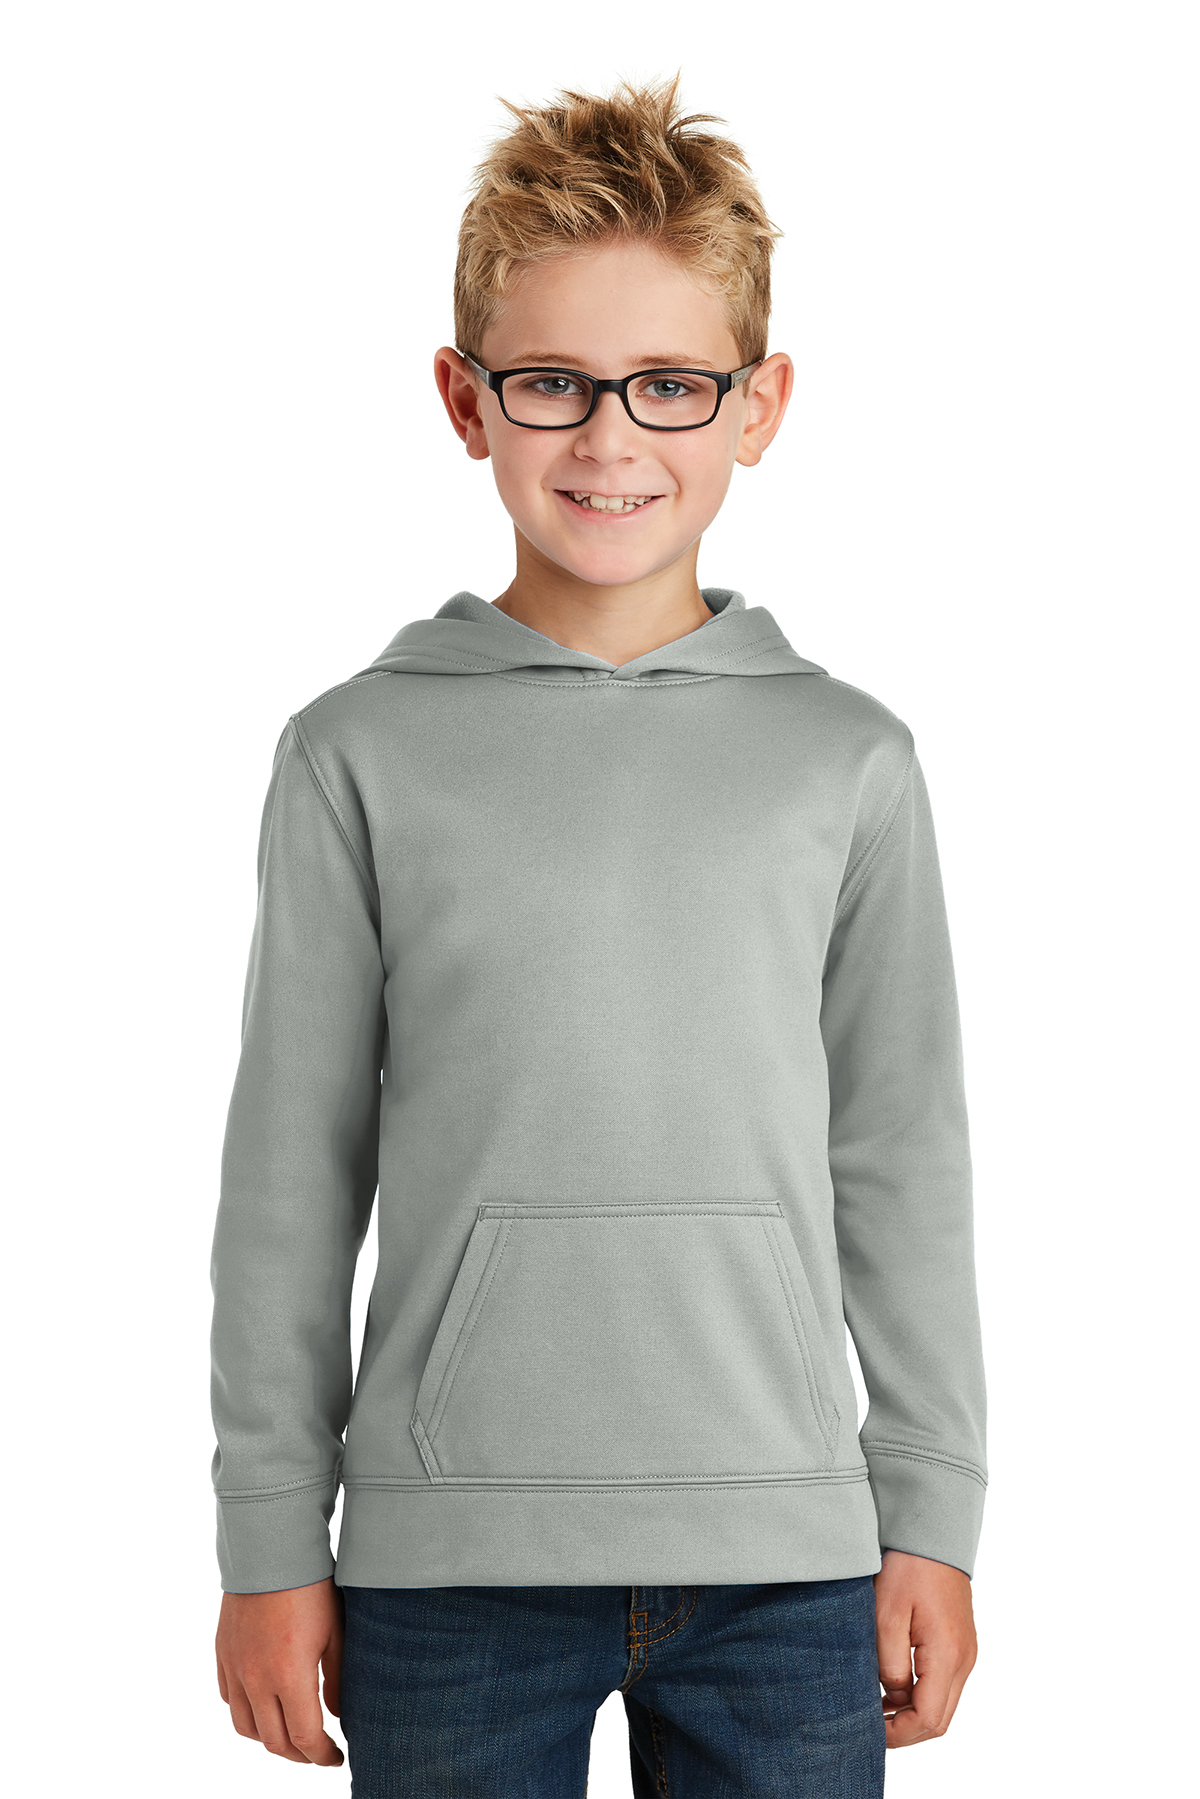 Port & Company PC590YH - Youth Performance Fleece Pullover ...